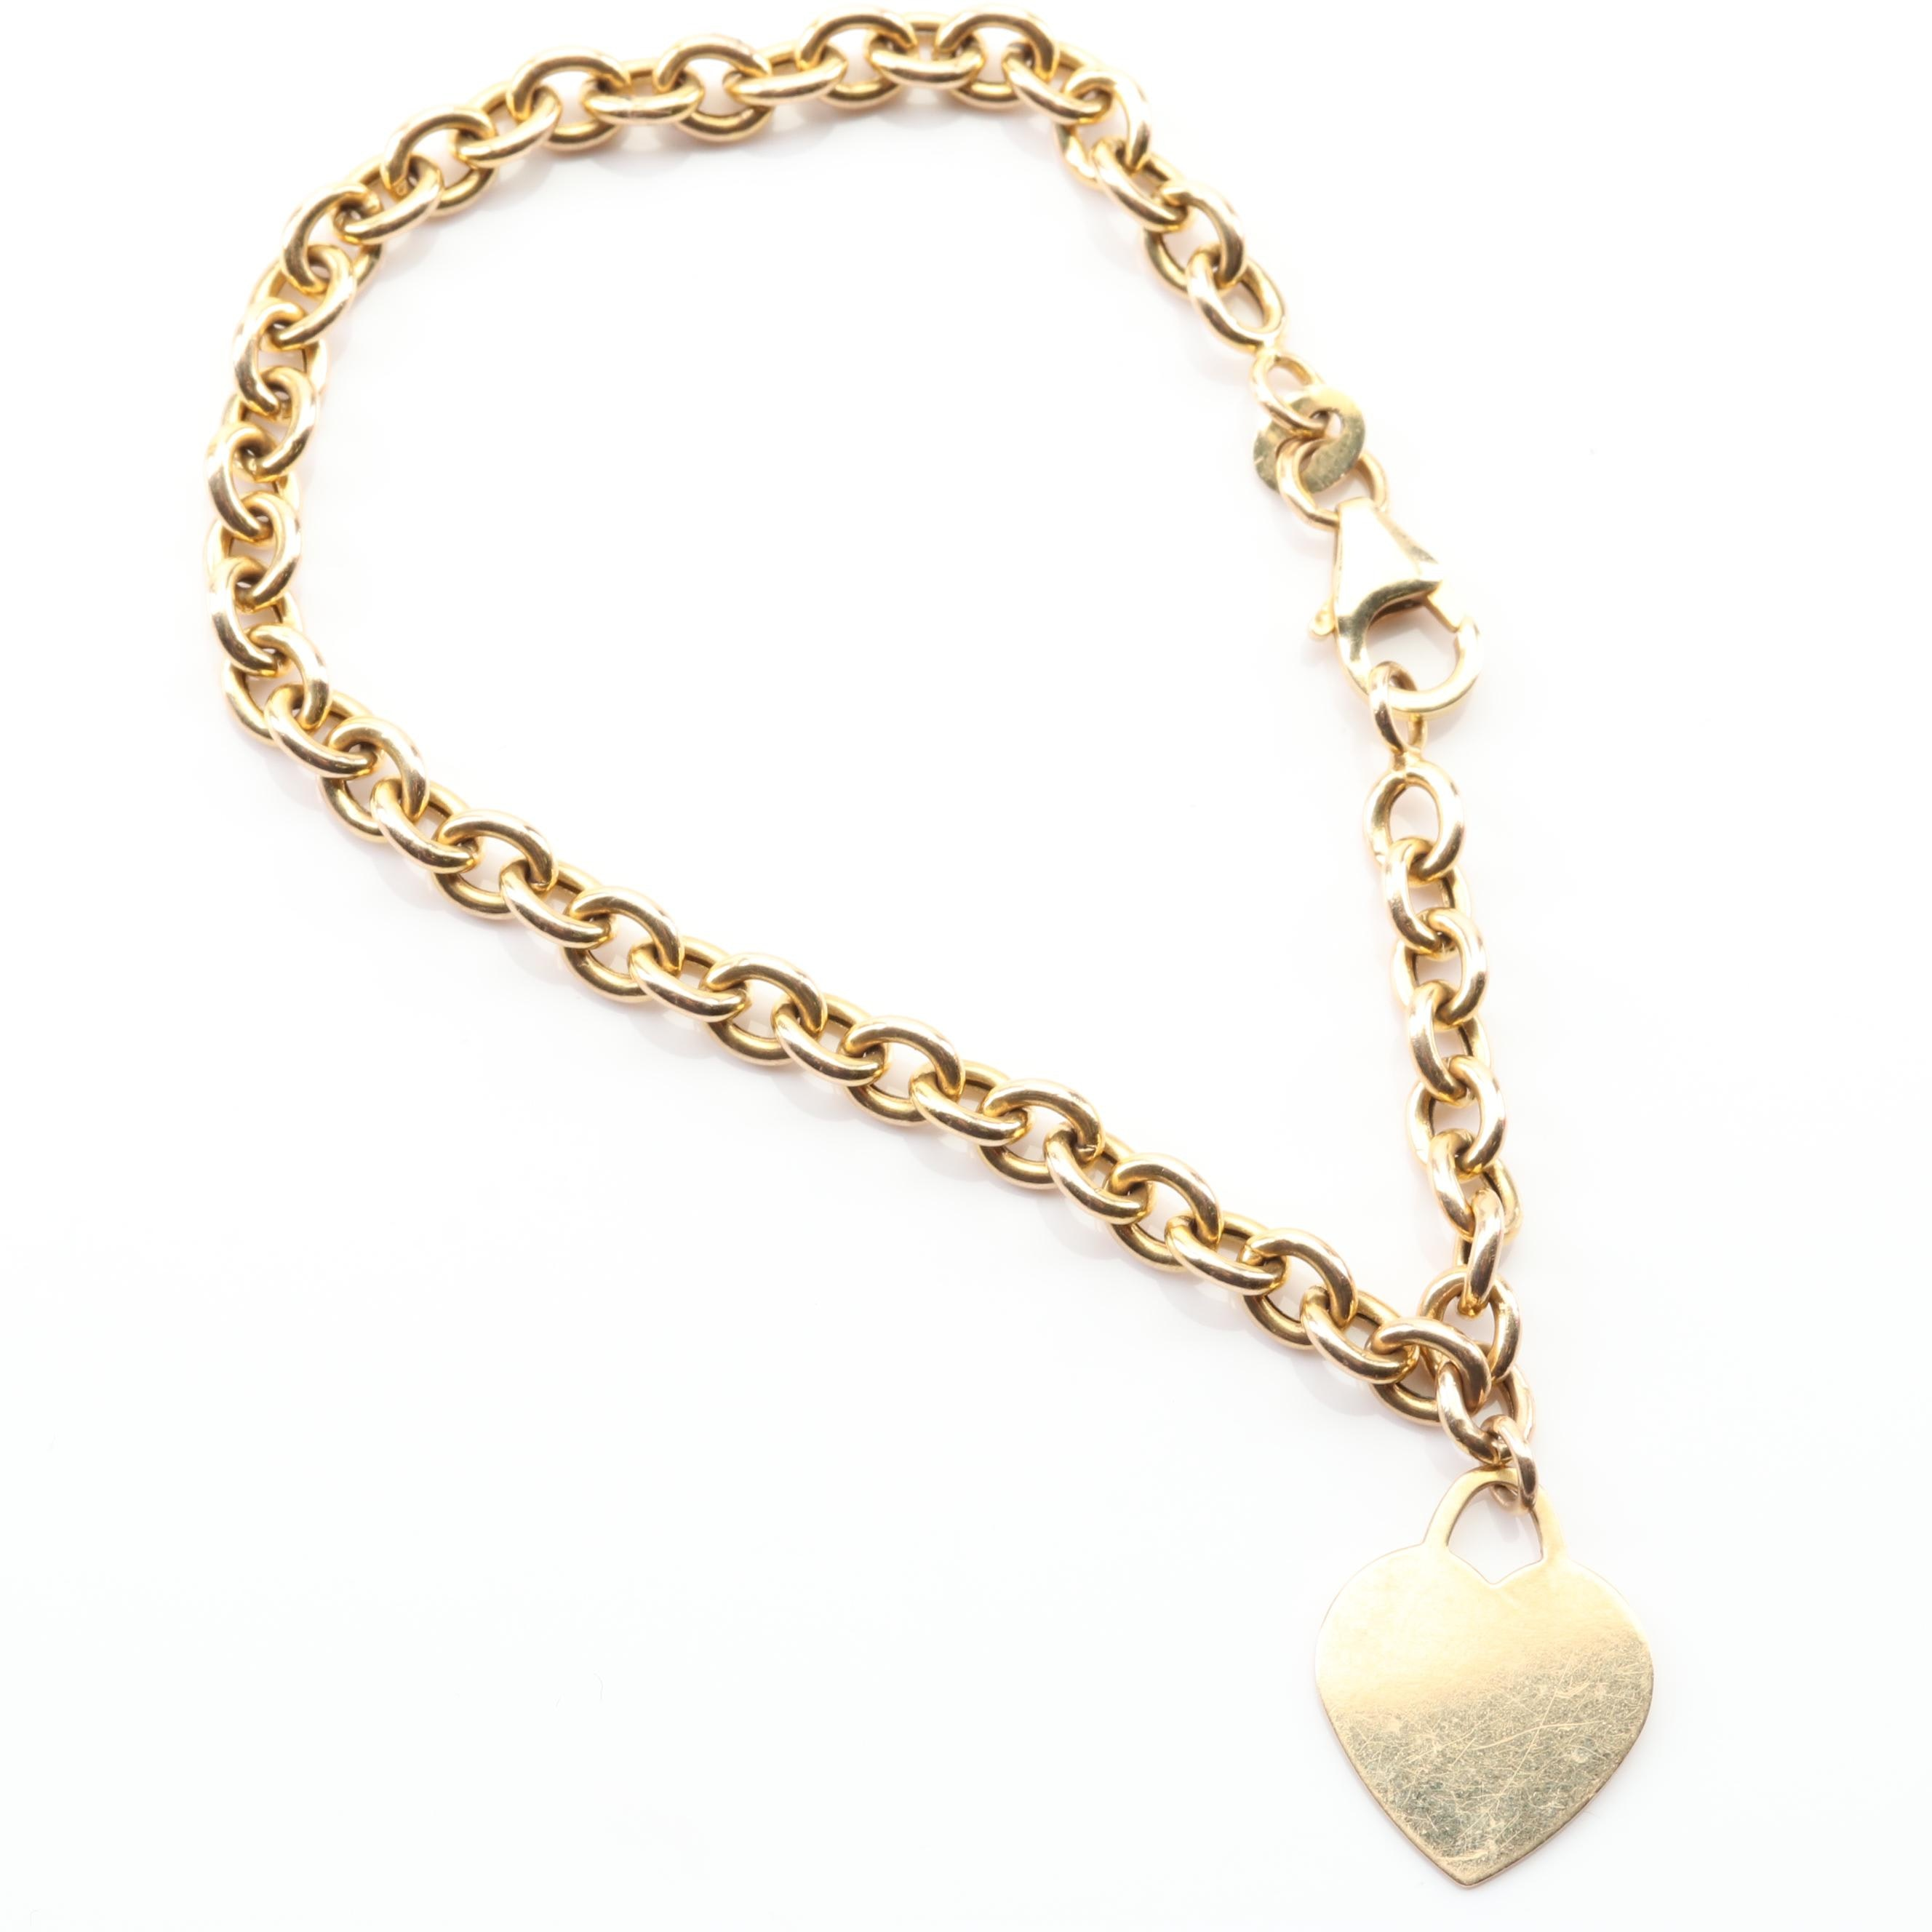 14K Yellow Gold Link Bracelet with Heart Charm Dangle